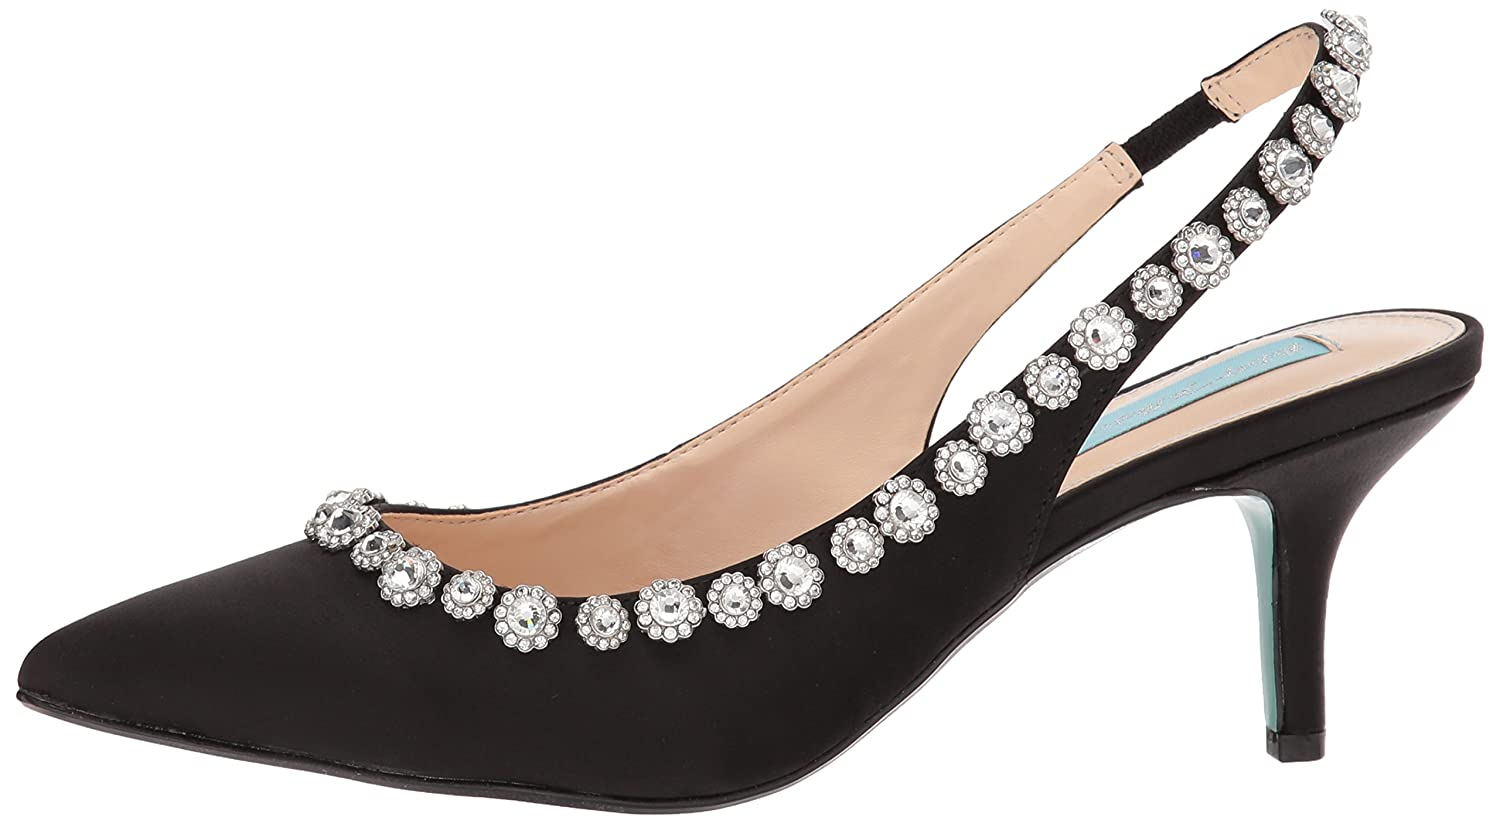 Blue by Betsey Johnson Women's SB-Cici Pump B0757MHR5K 7.5 M US|Black Satin